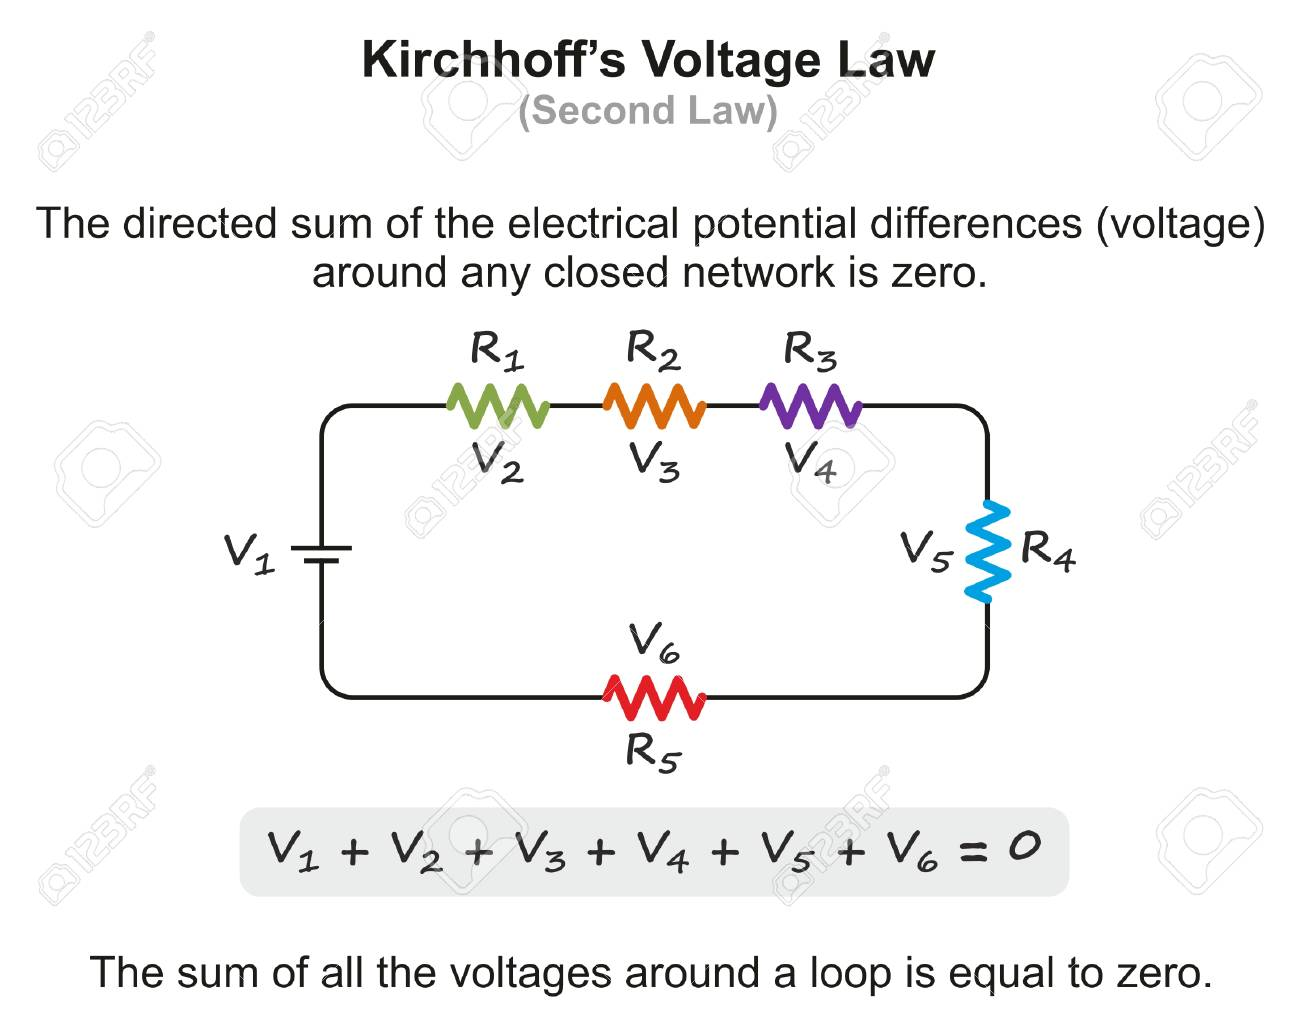 hight resolution of kirchhoff s voltage law infographic diagram with example showing the sum of all voltages around a loop